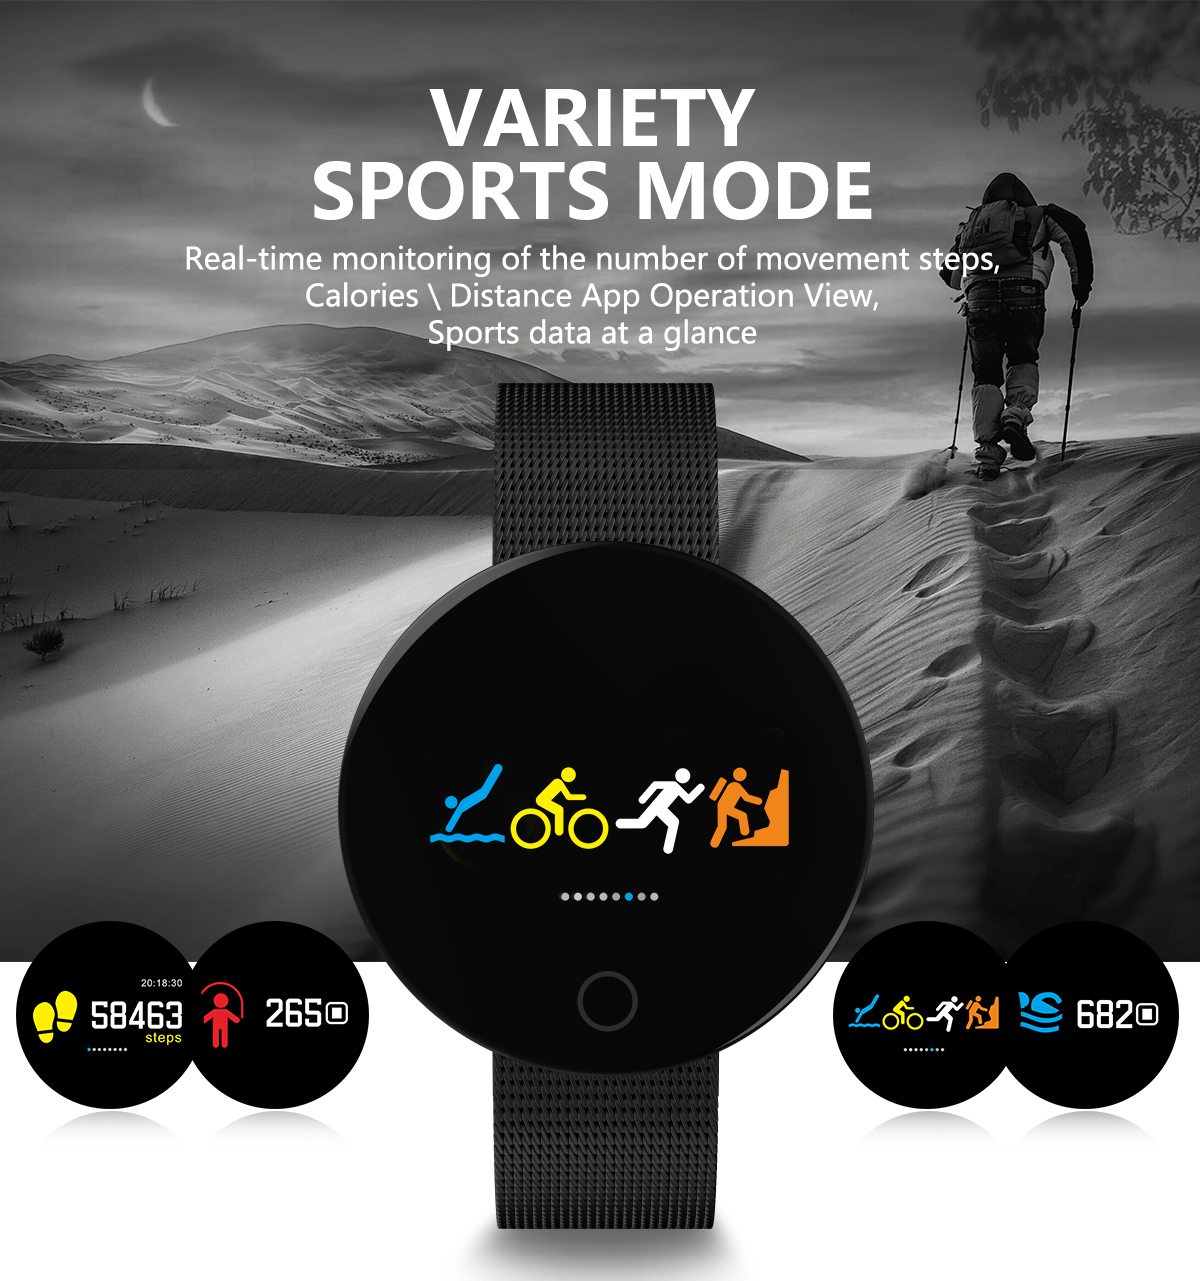 Wholesale Bluetooth Fitness Tracker - Heartrate Monitor, Pedometer, Calorie Counter, Notificaions, Calls, , 0.96 Inch Display Ip67